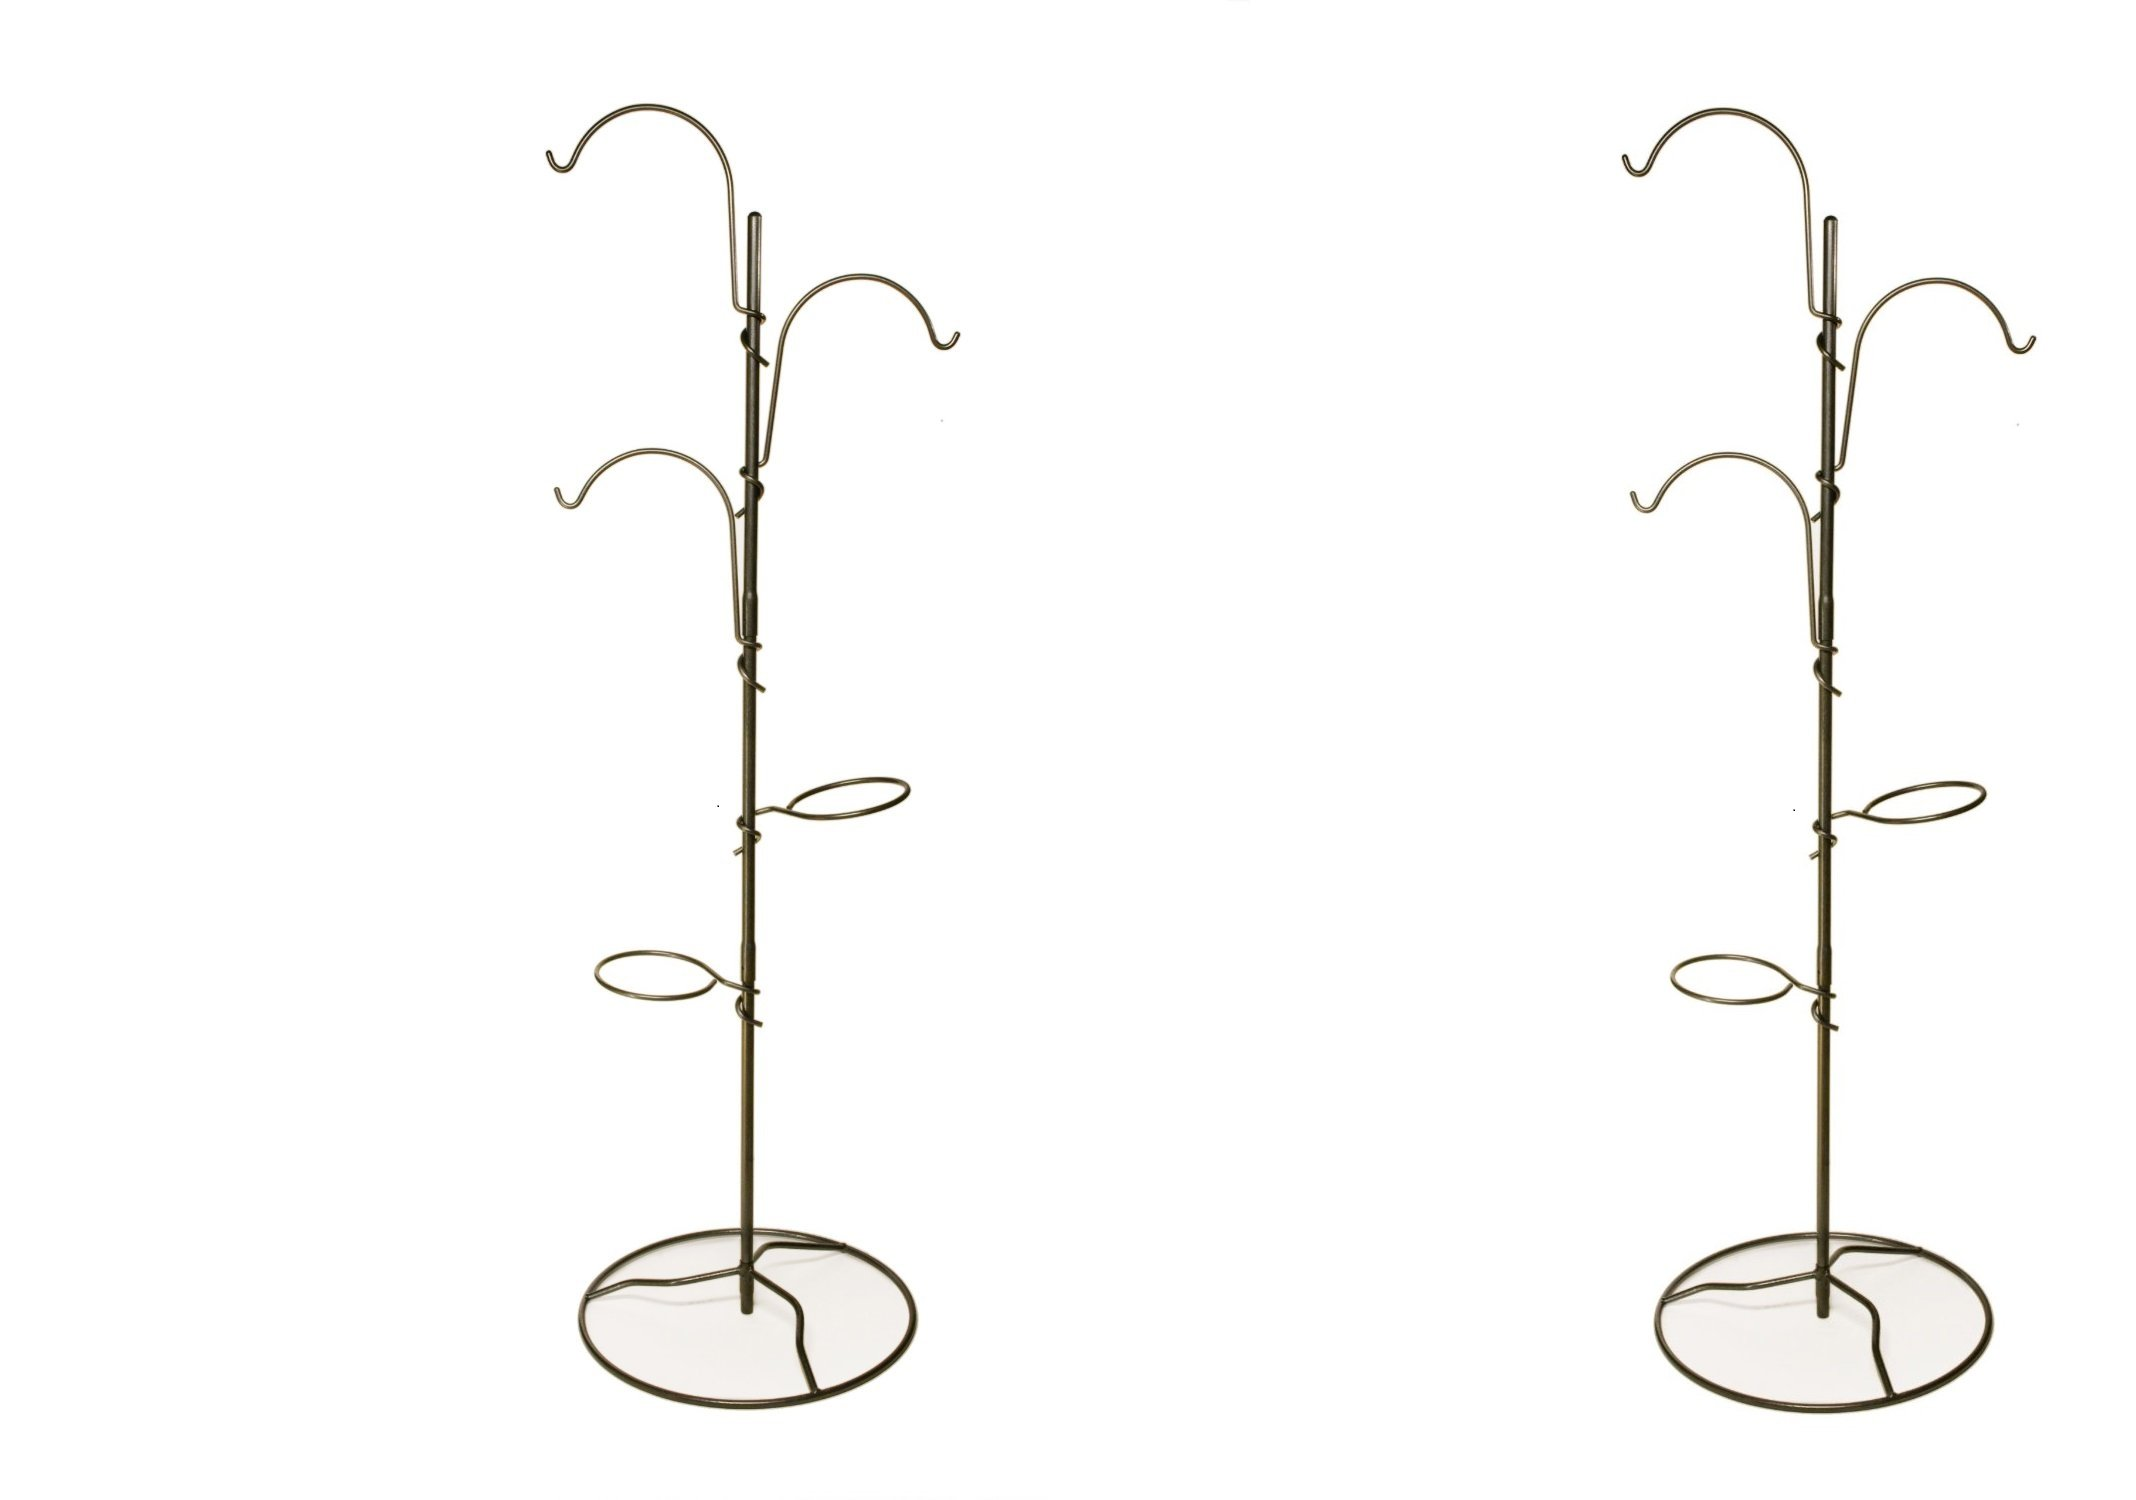 Yard Butler YT-5 Yard Tree Hanging Garden System (Pack of 2)